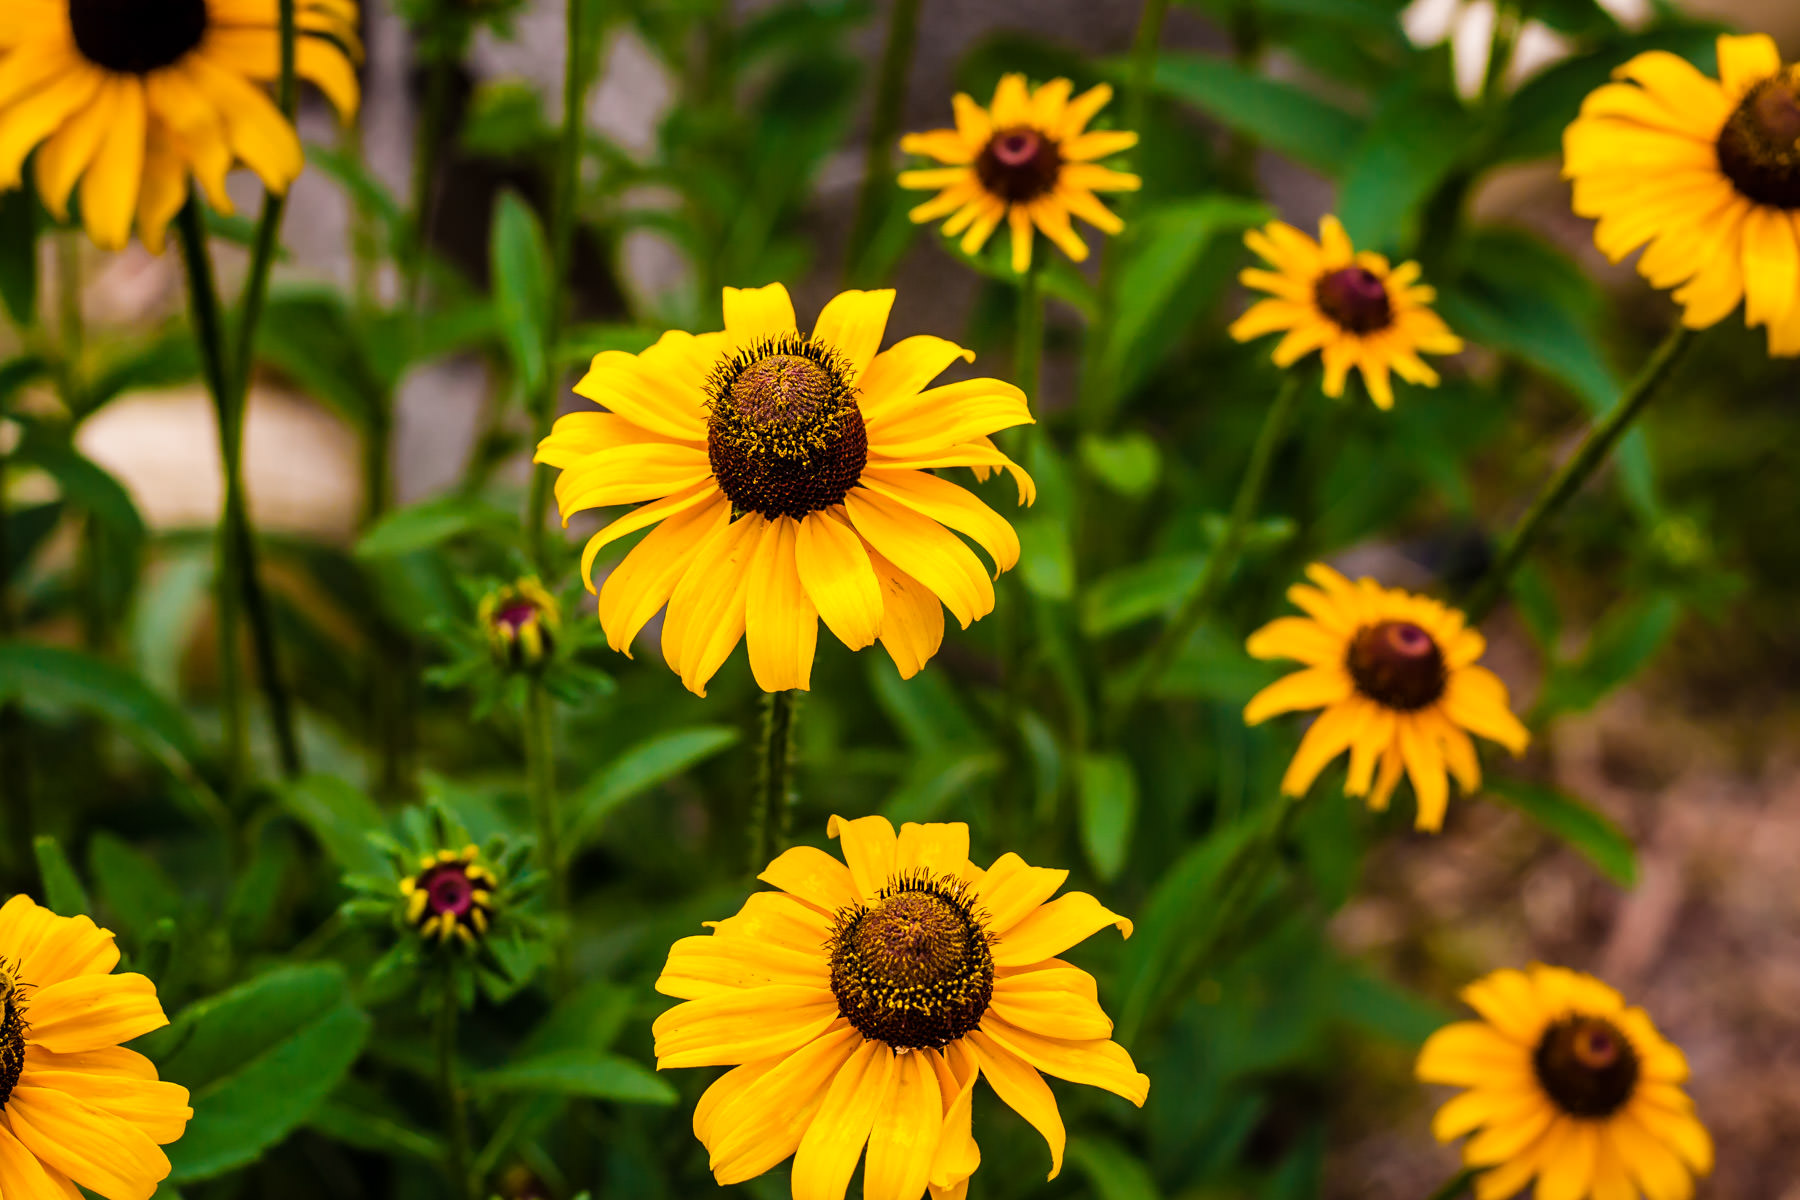 A group of black-eyed-susans spotted somewhere in East Texas.